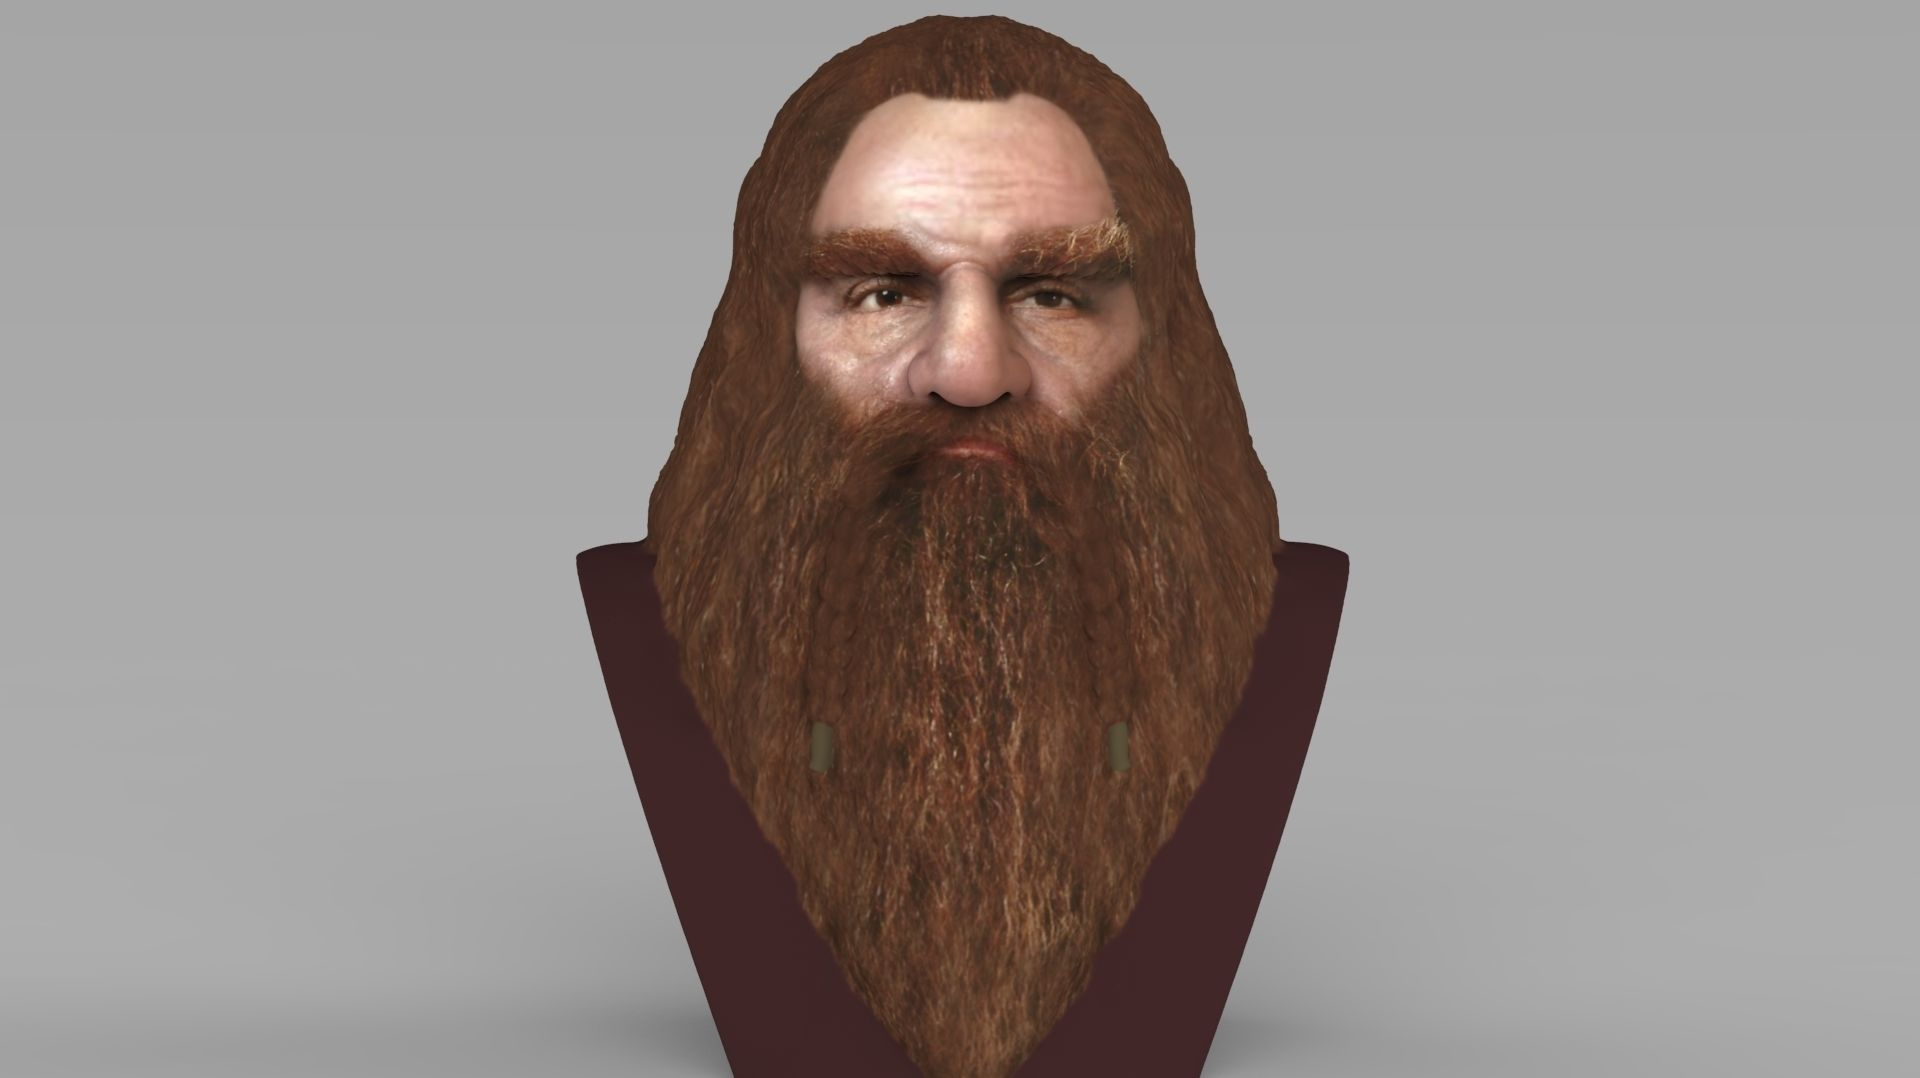 Gimli Lord of the Rings bust full color 3D printing ready